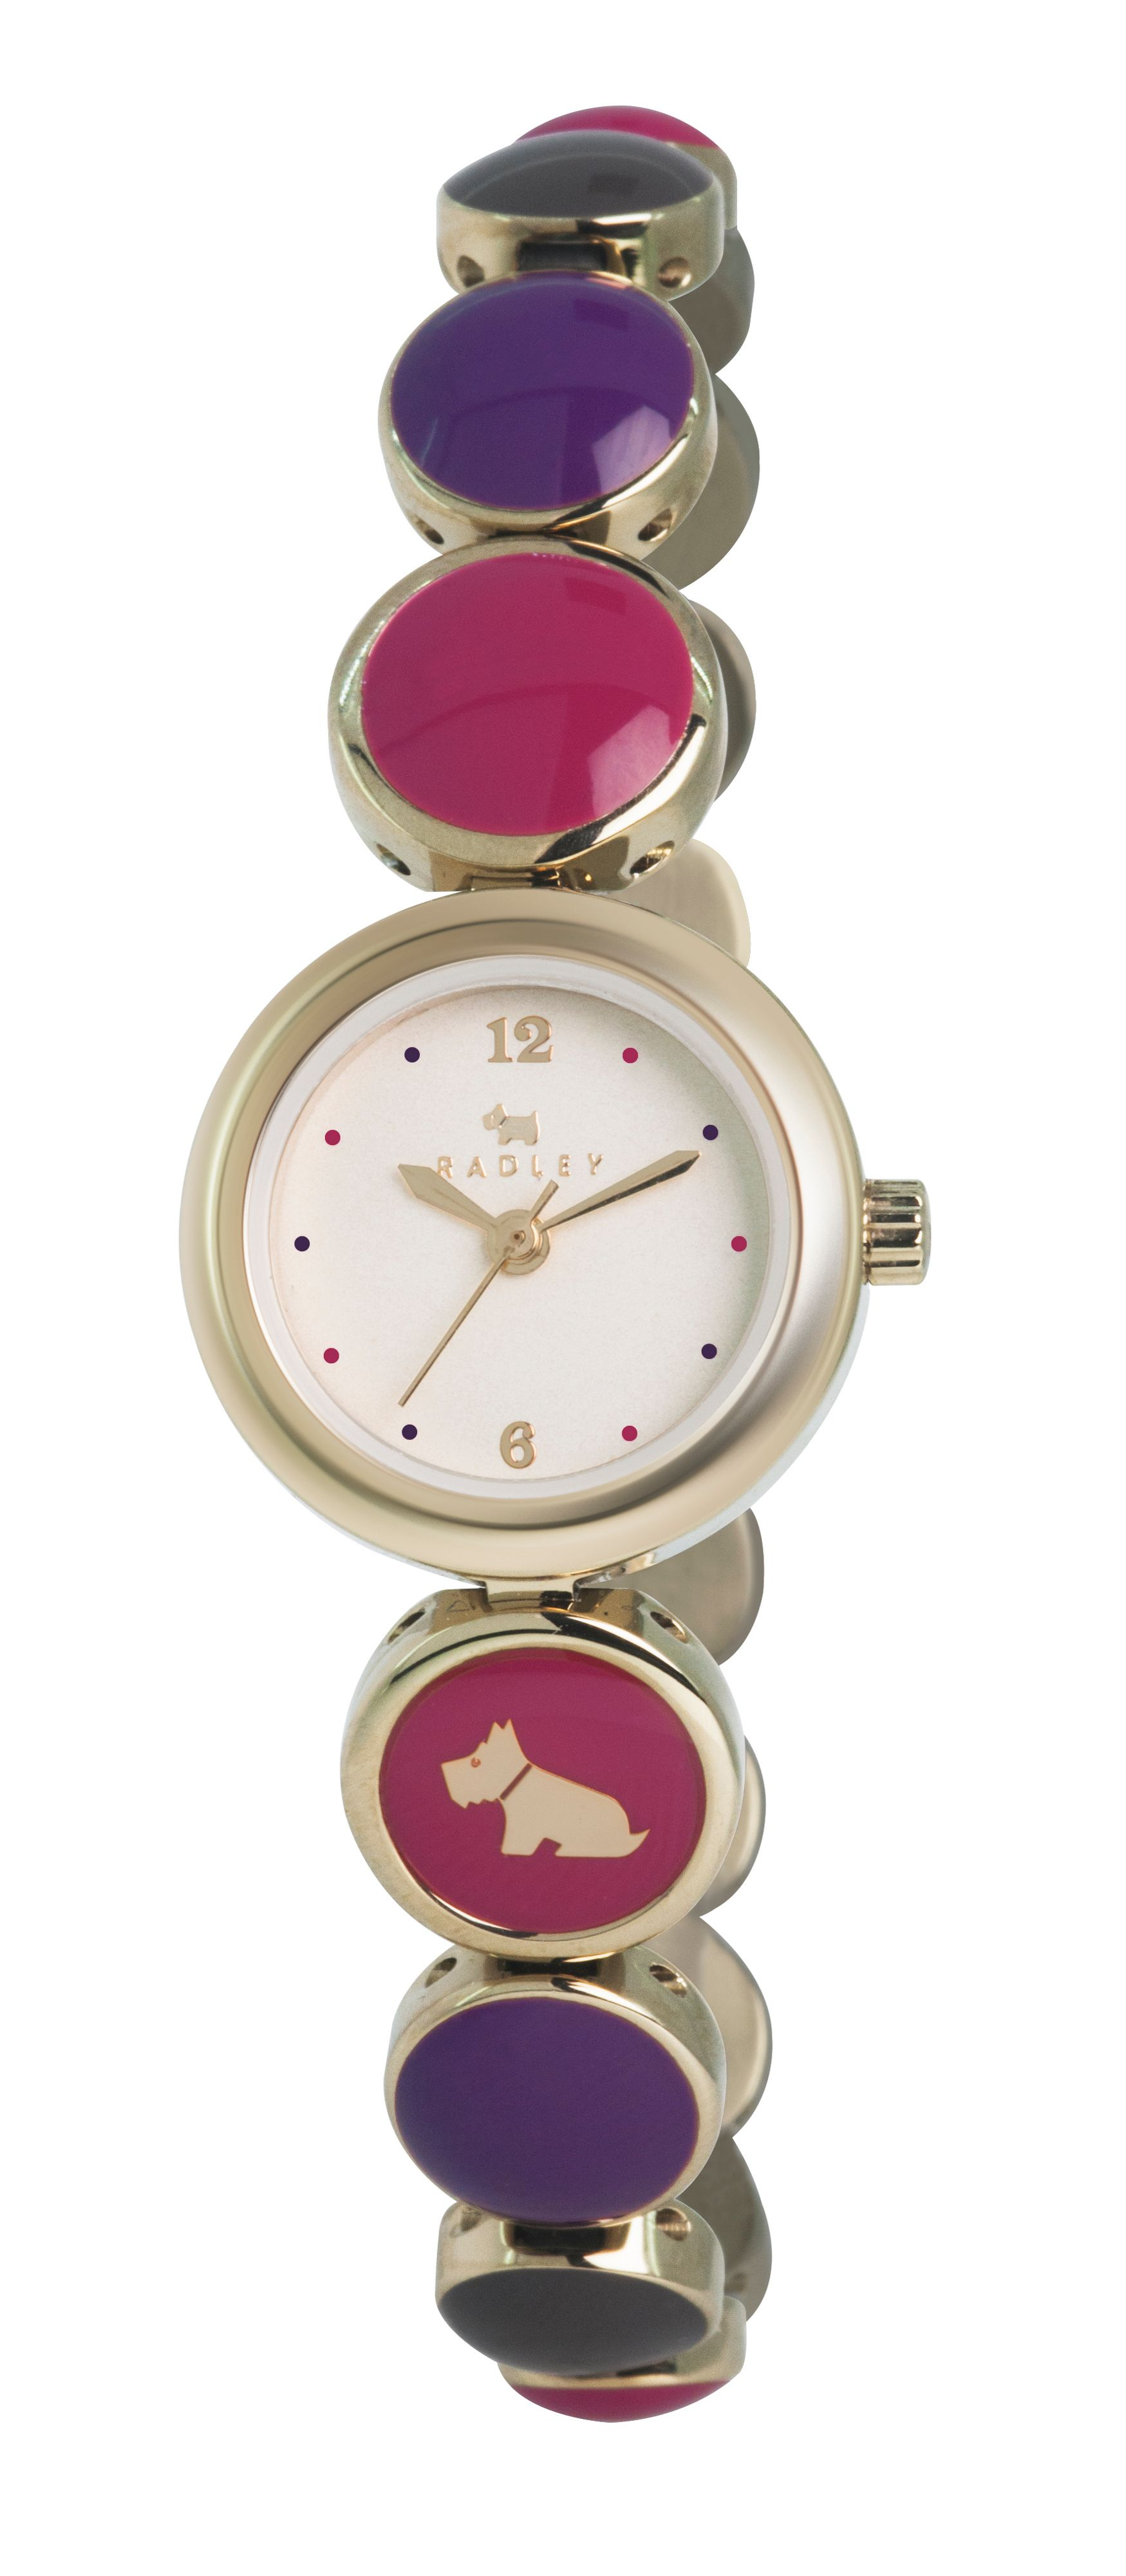 RY4168 Gold enamel ladies watch